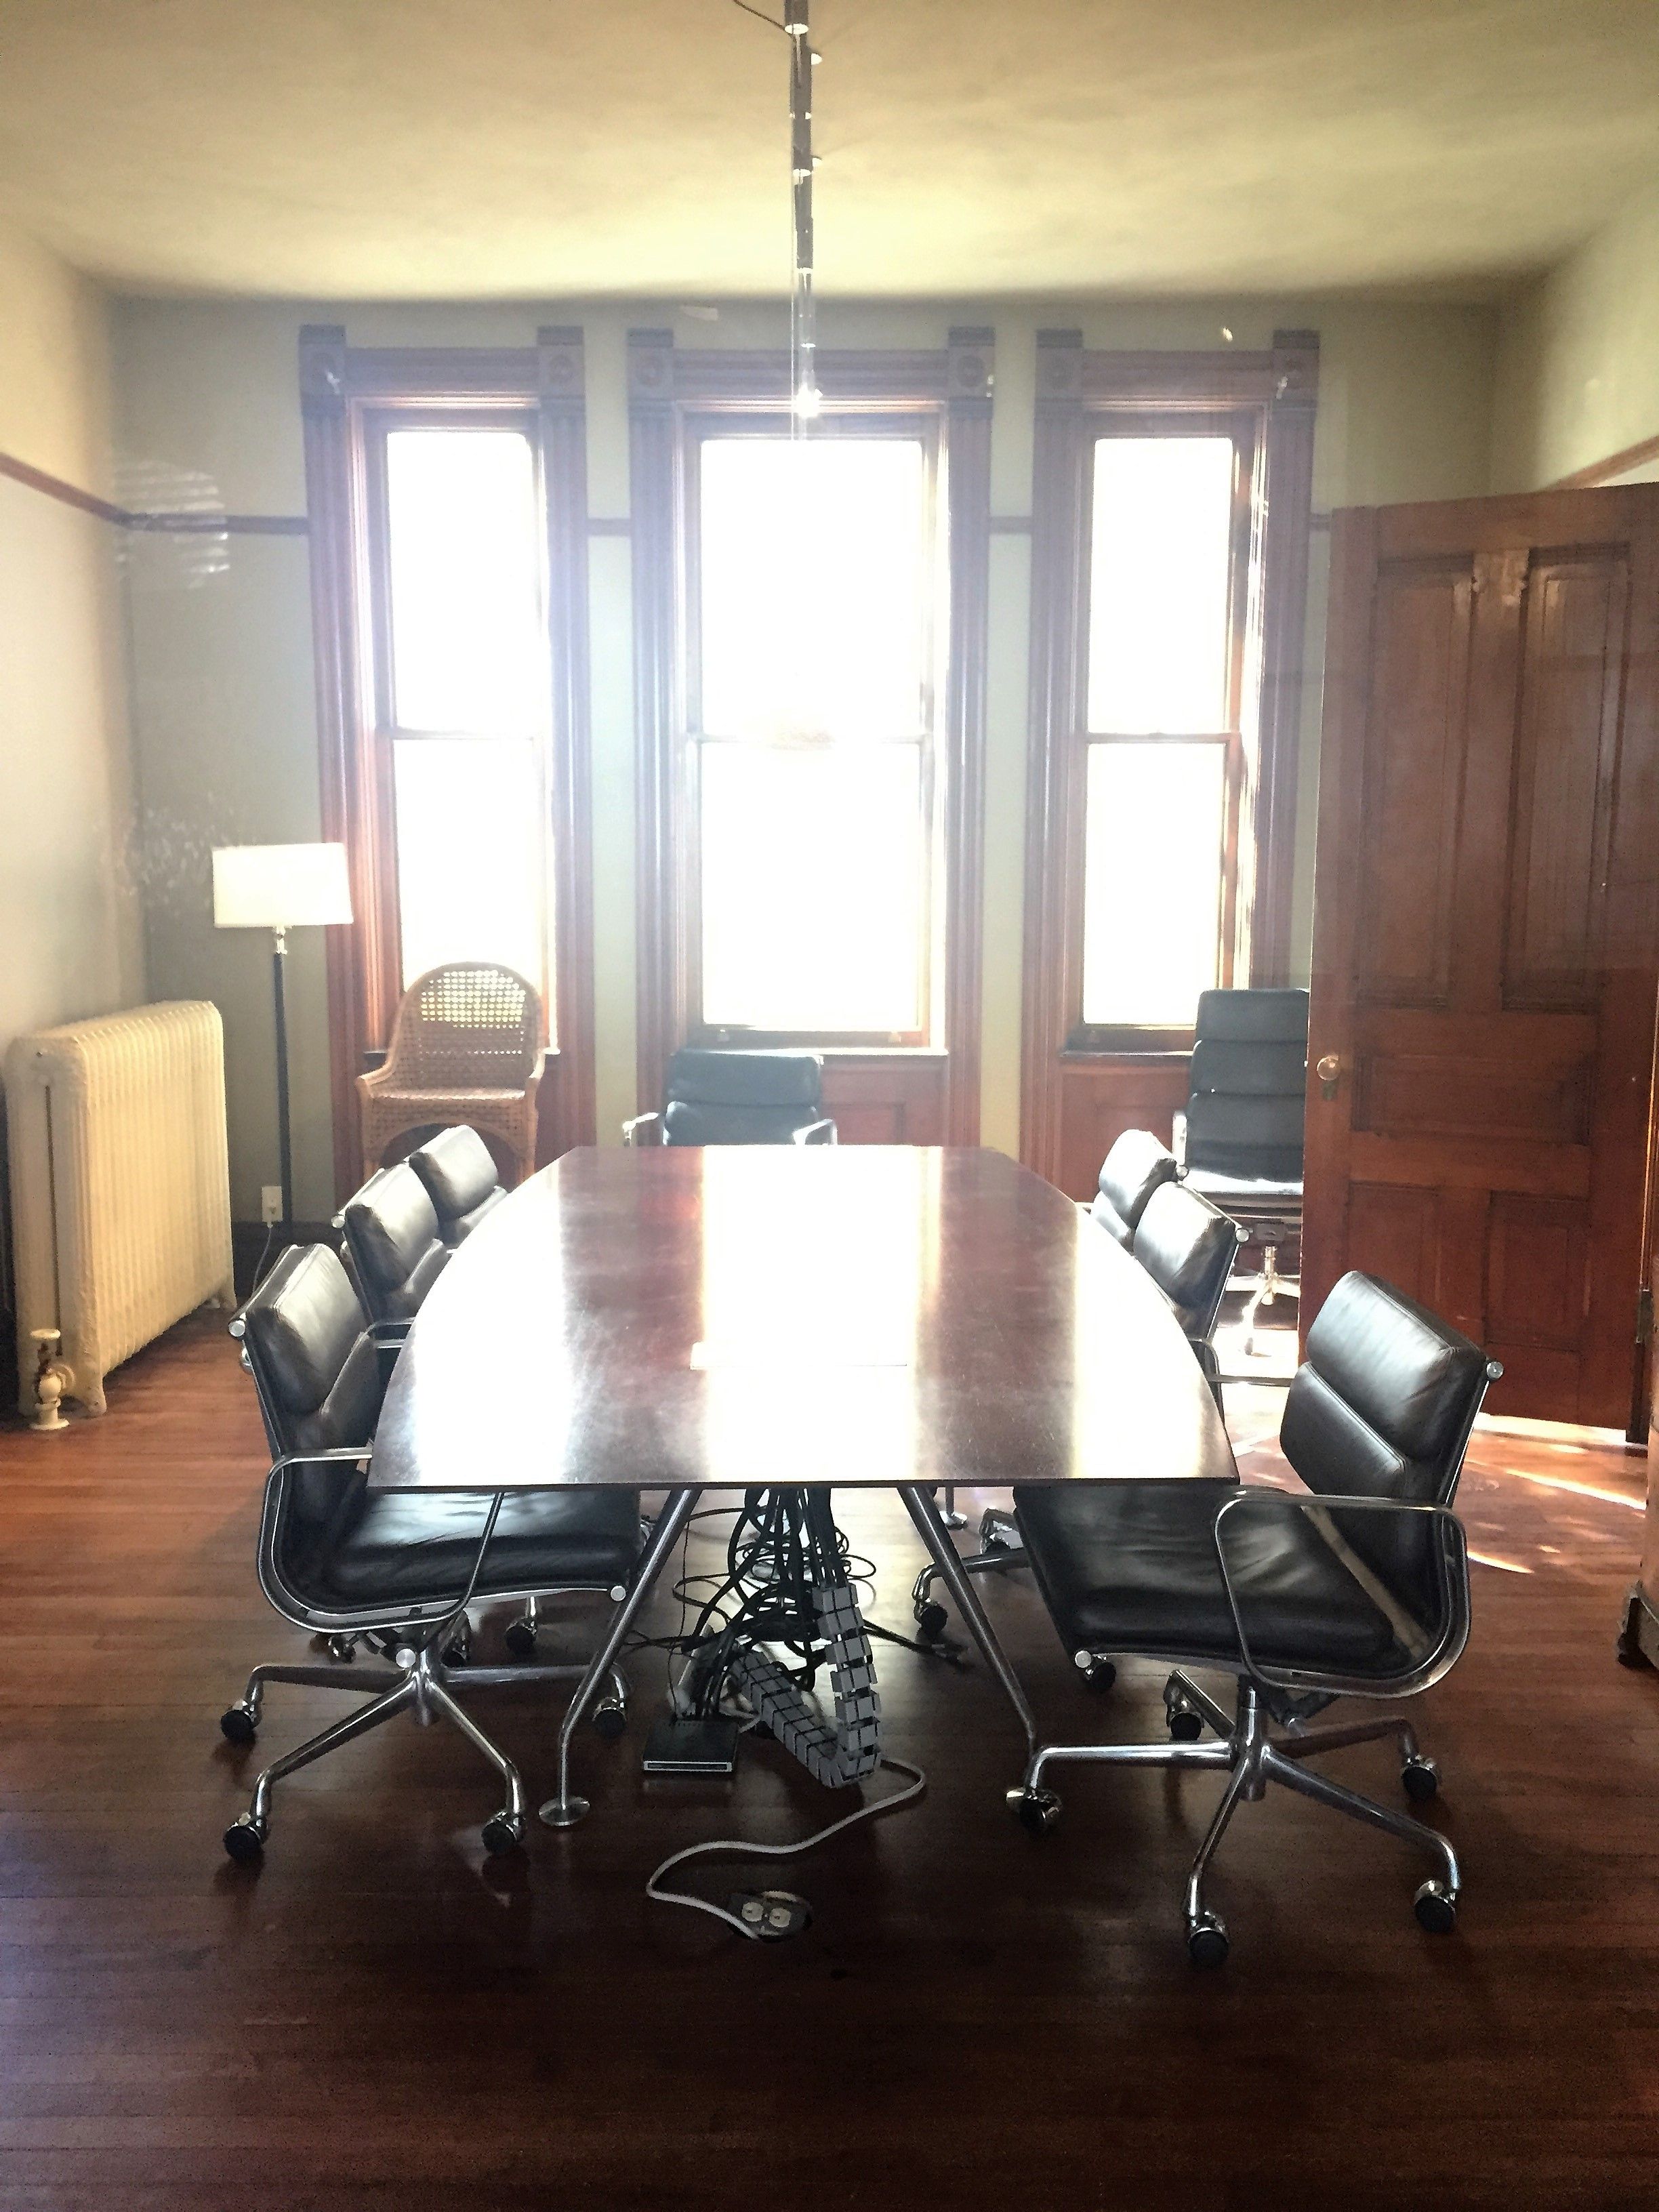 320 West Main Street Office Space – SOLD